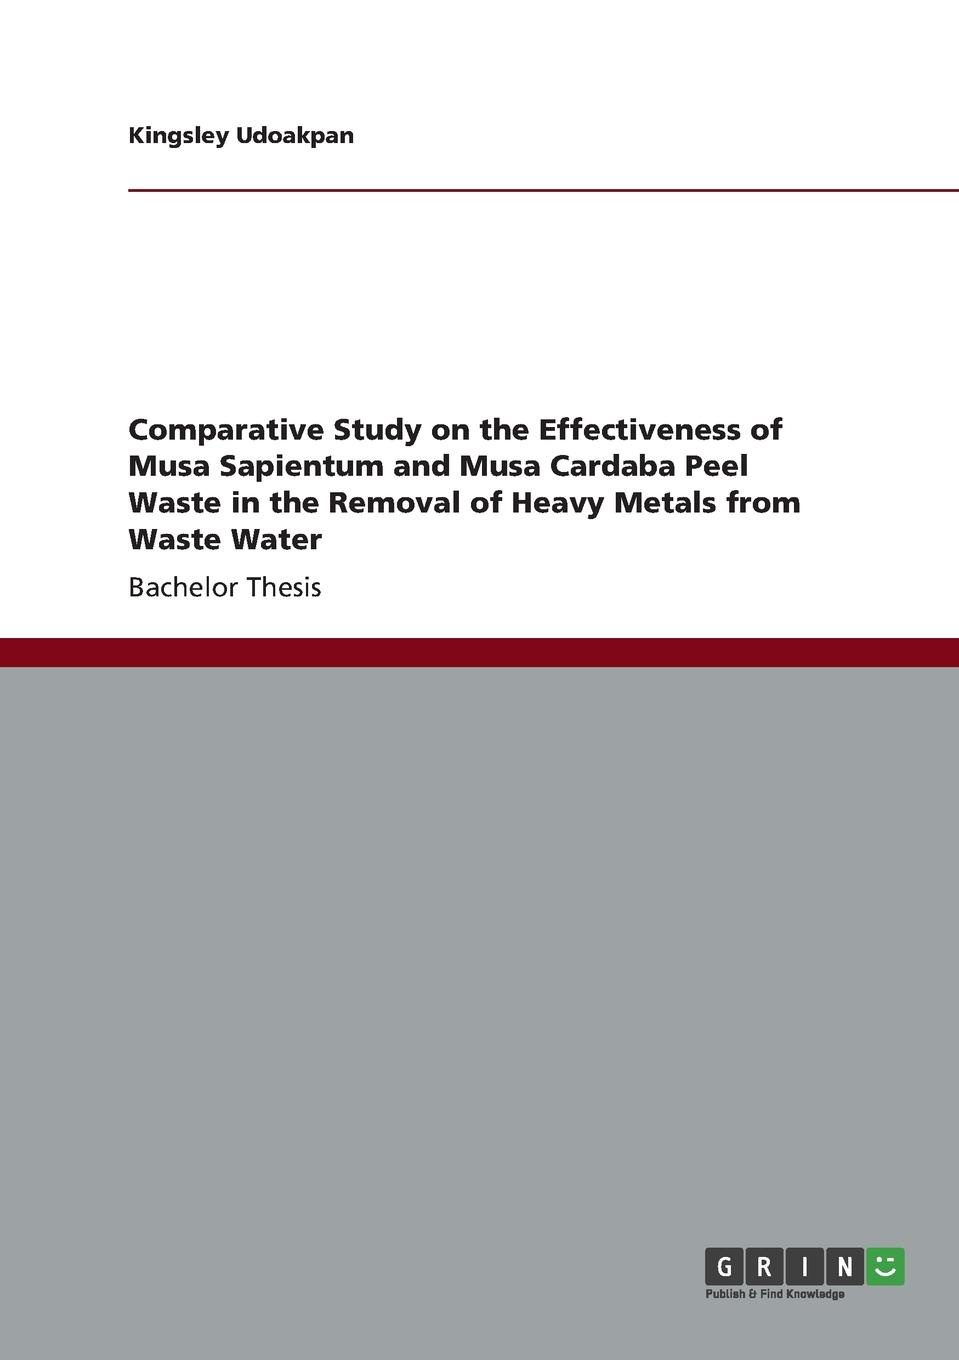 Kingsley Udoakpan Comparative Study on the Effectiveness of Musa Sapientum and Musa Cardaba Peel Waste in the Removal of Heavy Metals from Waste Water yogesh sharma c a guide to the economic removal of metals from aqueous solutions